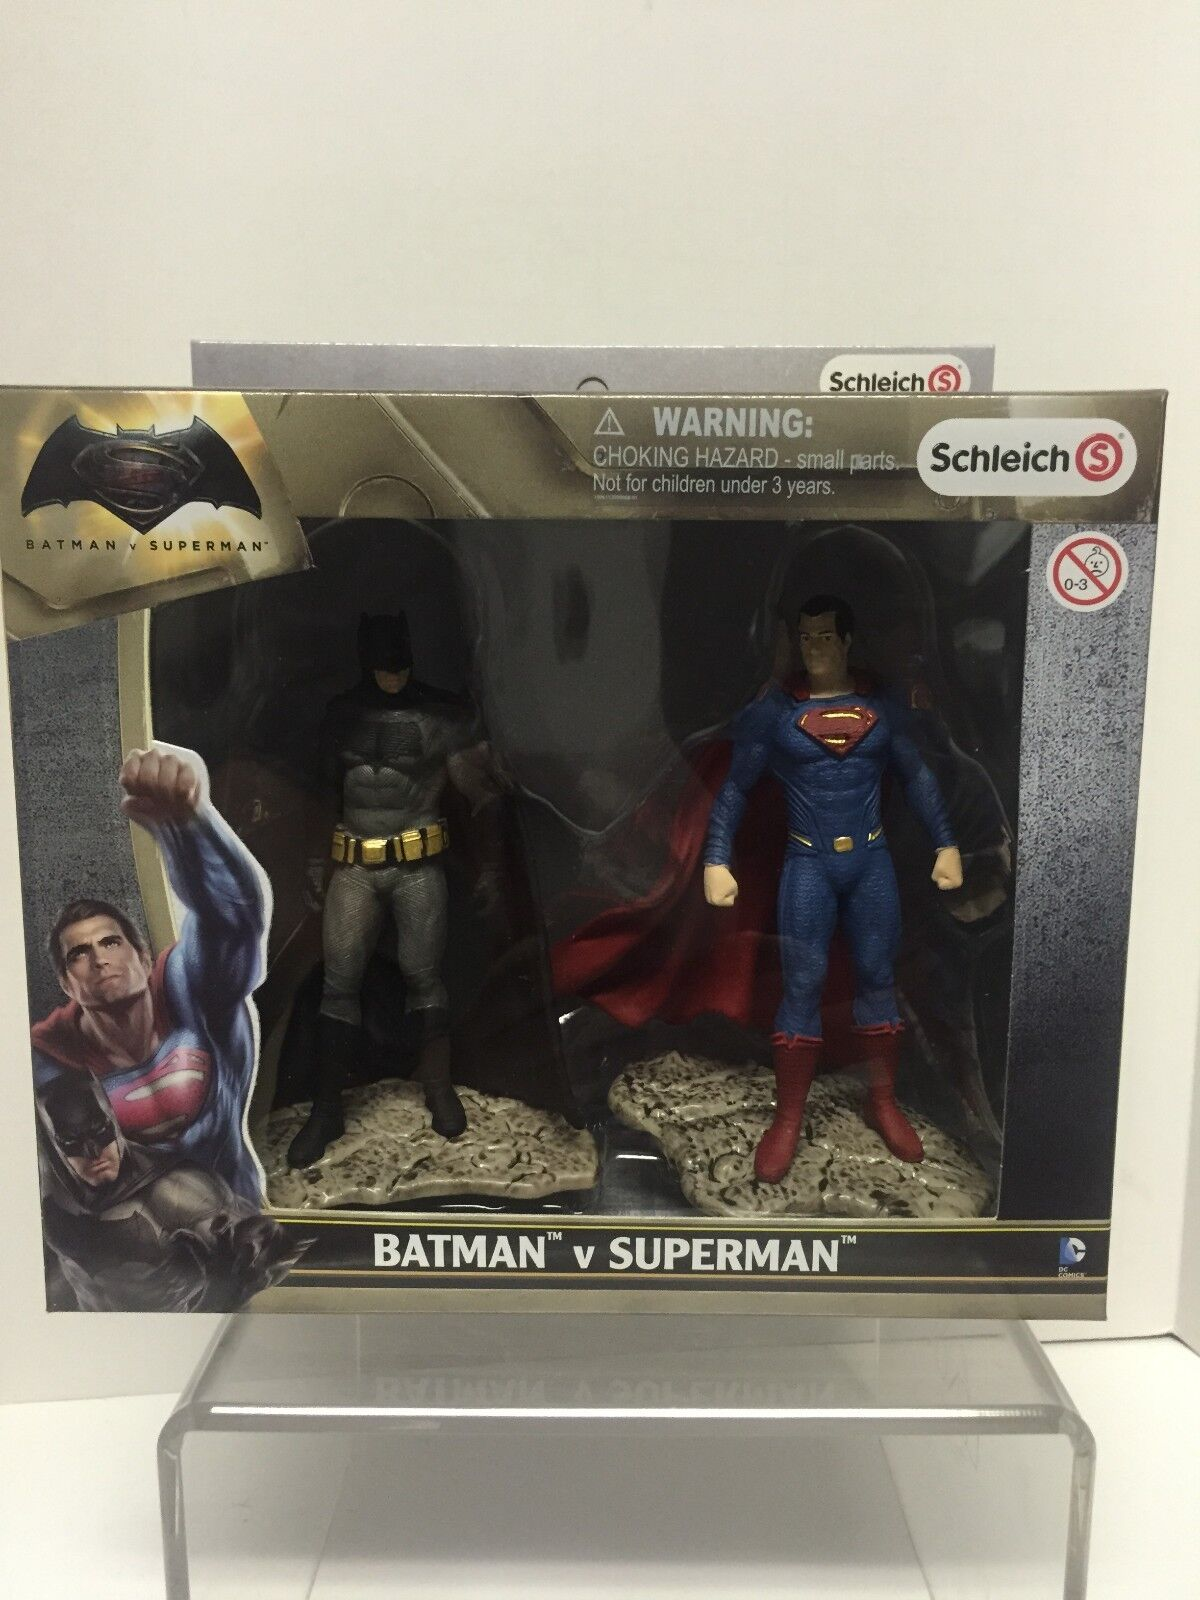 Schleich Batman V Superman ([Batman vs Superman)  22529 DC Comics